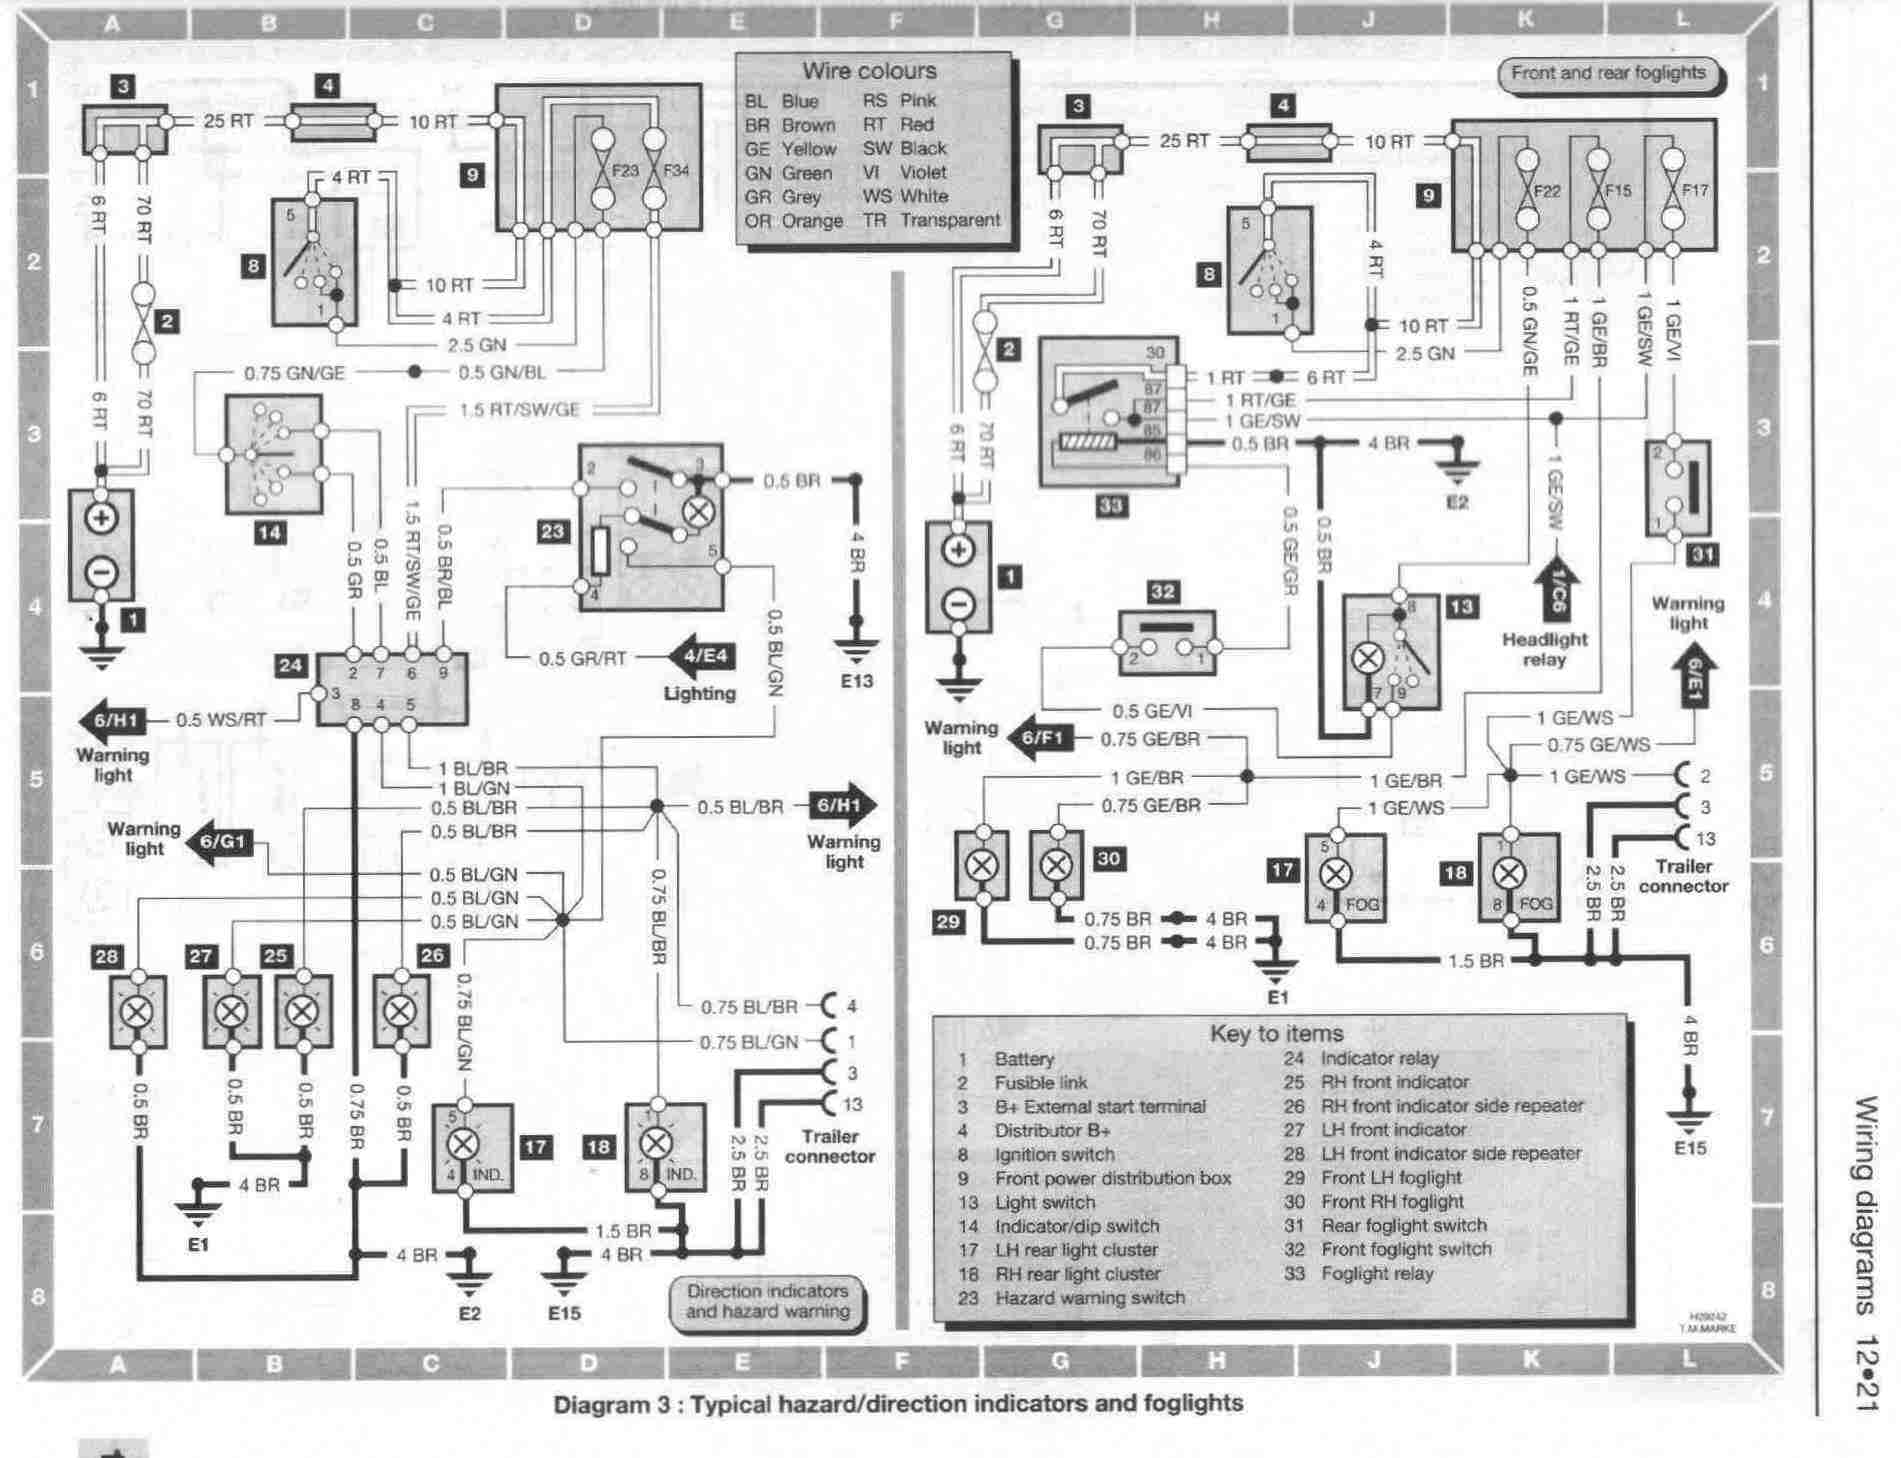 [WRG-1887] 1066 International Tractor Wiring Diagram